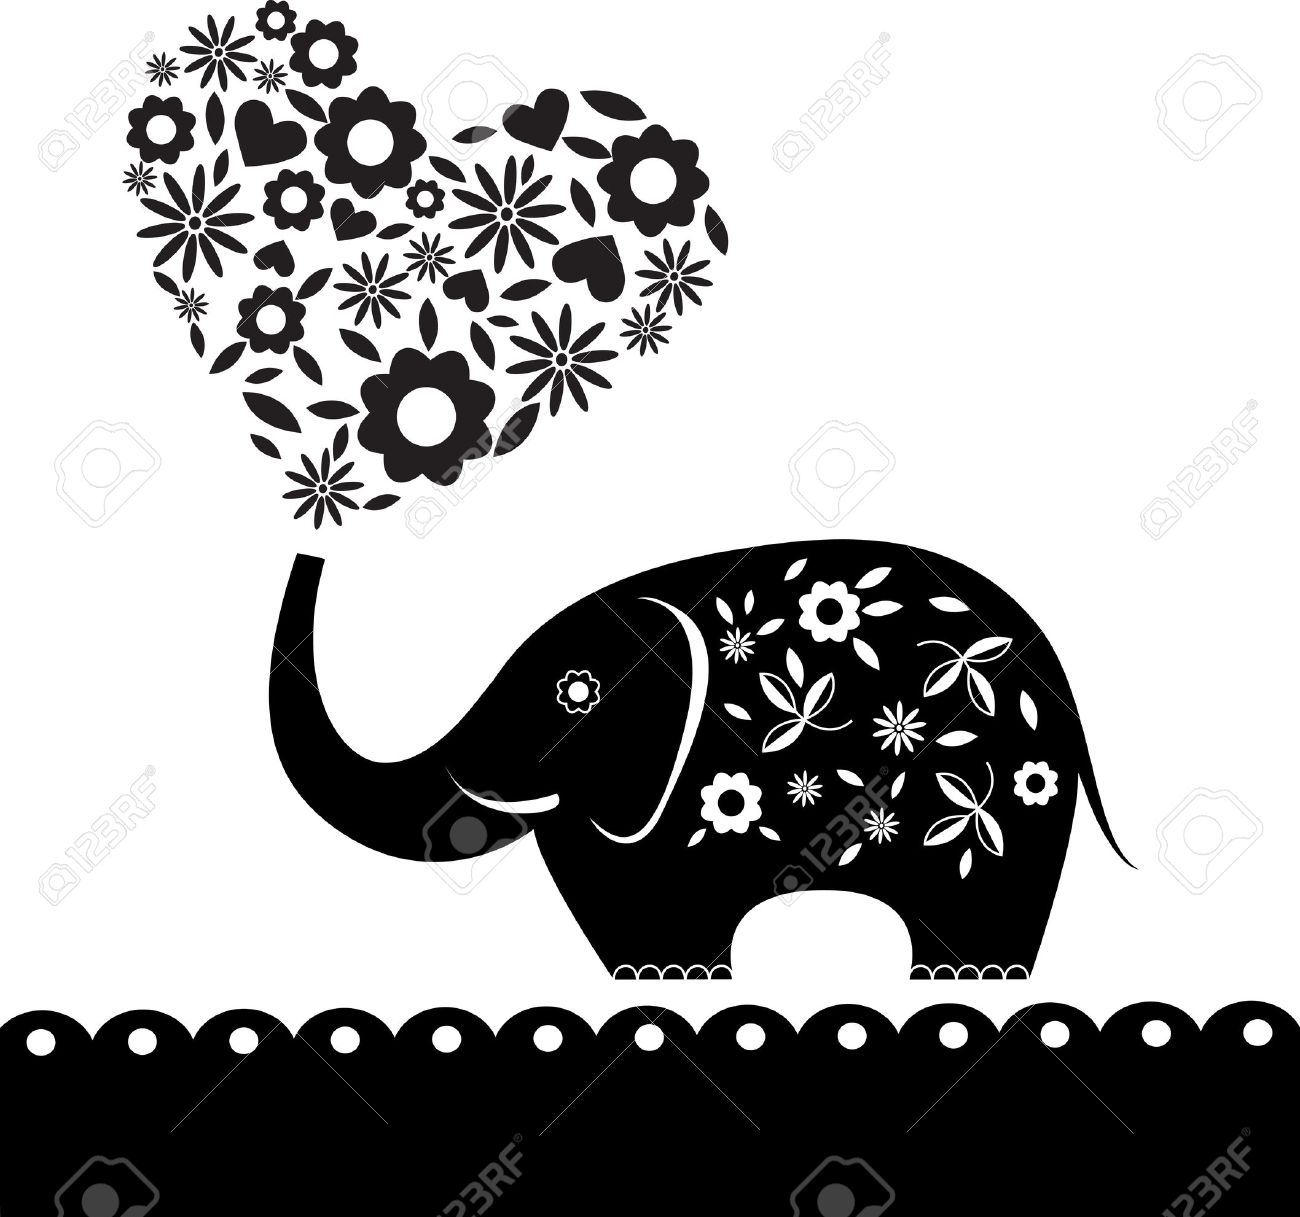 Elephant with hearts clipart svg free library Cute Elephant With Flowers. Heart Card. Illustration. Royalty Free ... svg free library